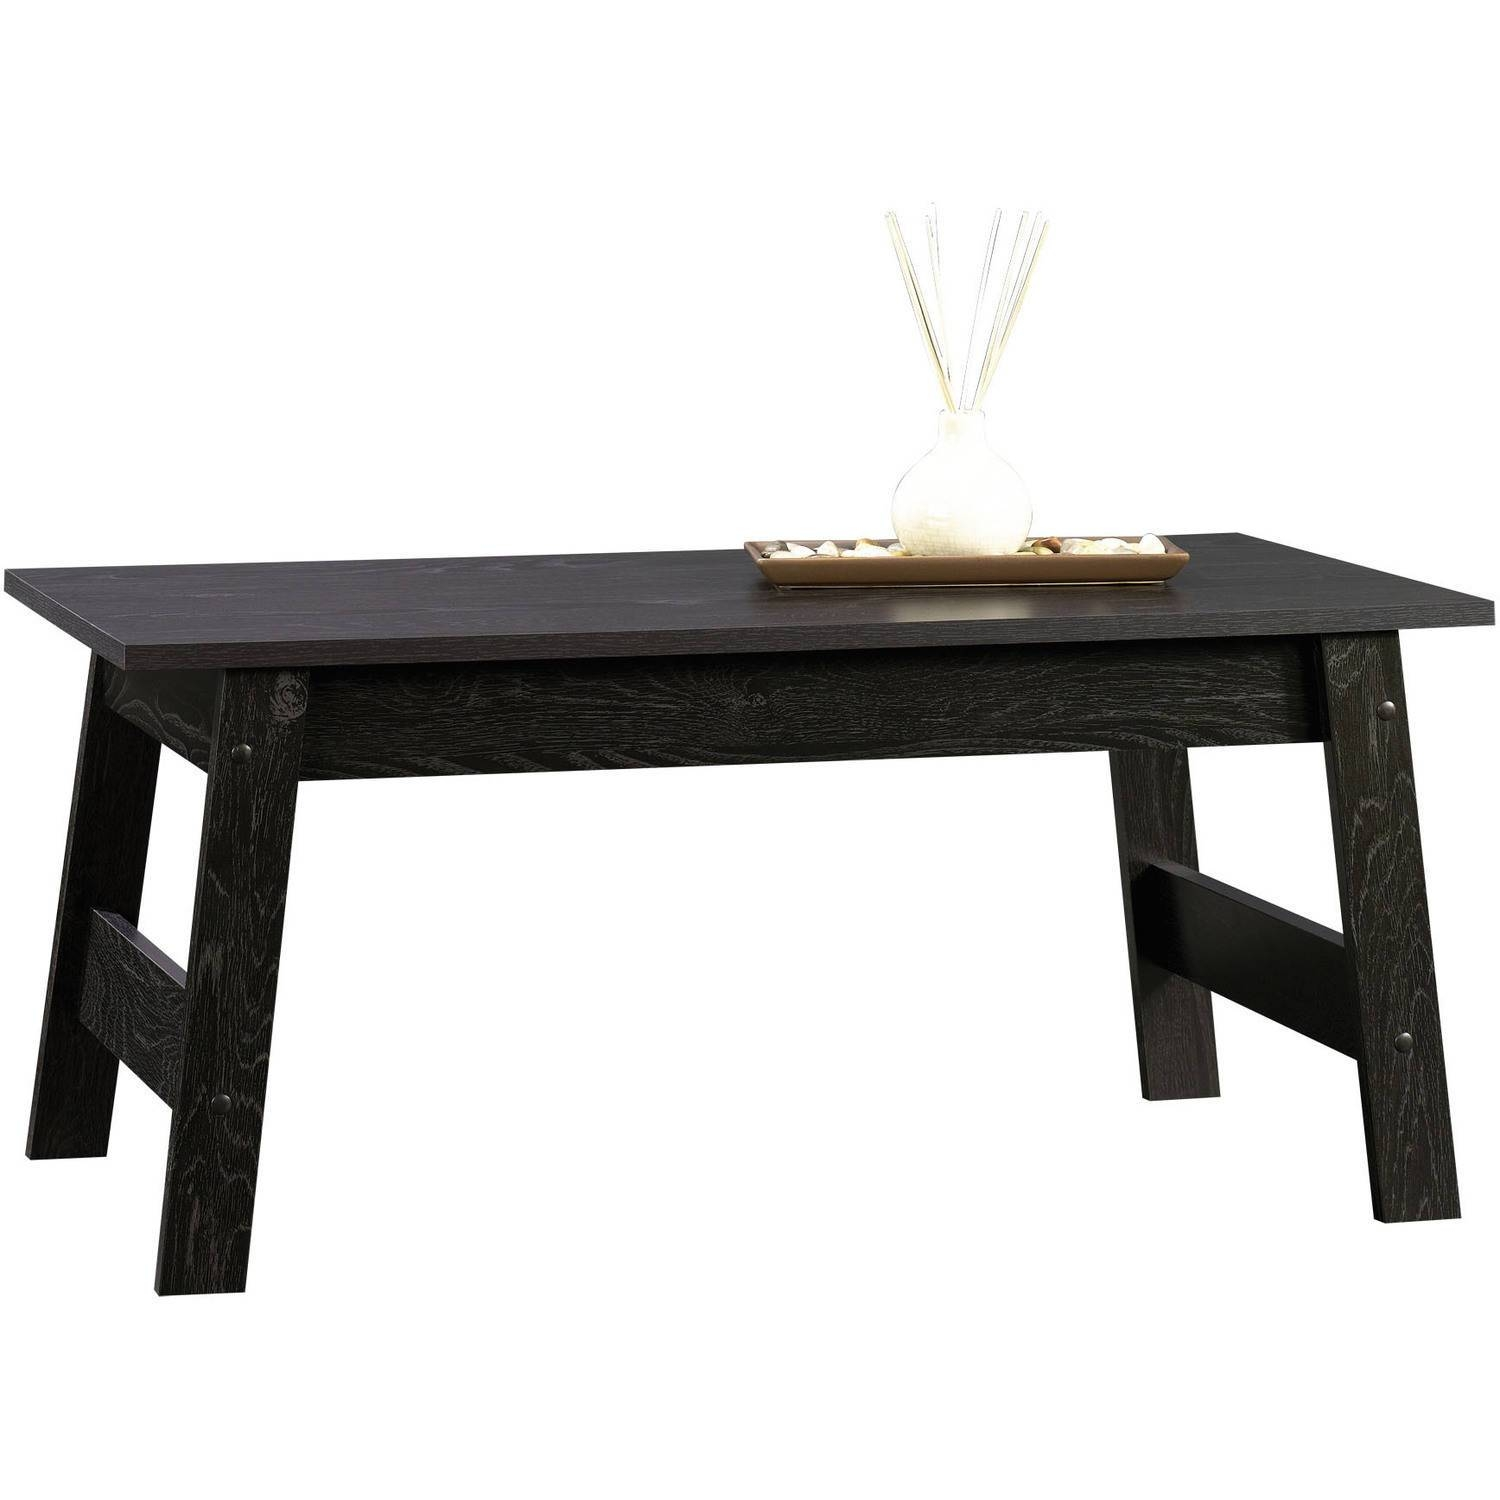 Sauder Beginnings Collection Coffee Table, Black - Walmart for White and Black Coffee Tables (Image 21 of 30)